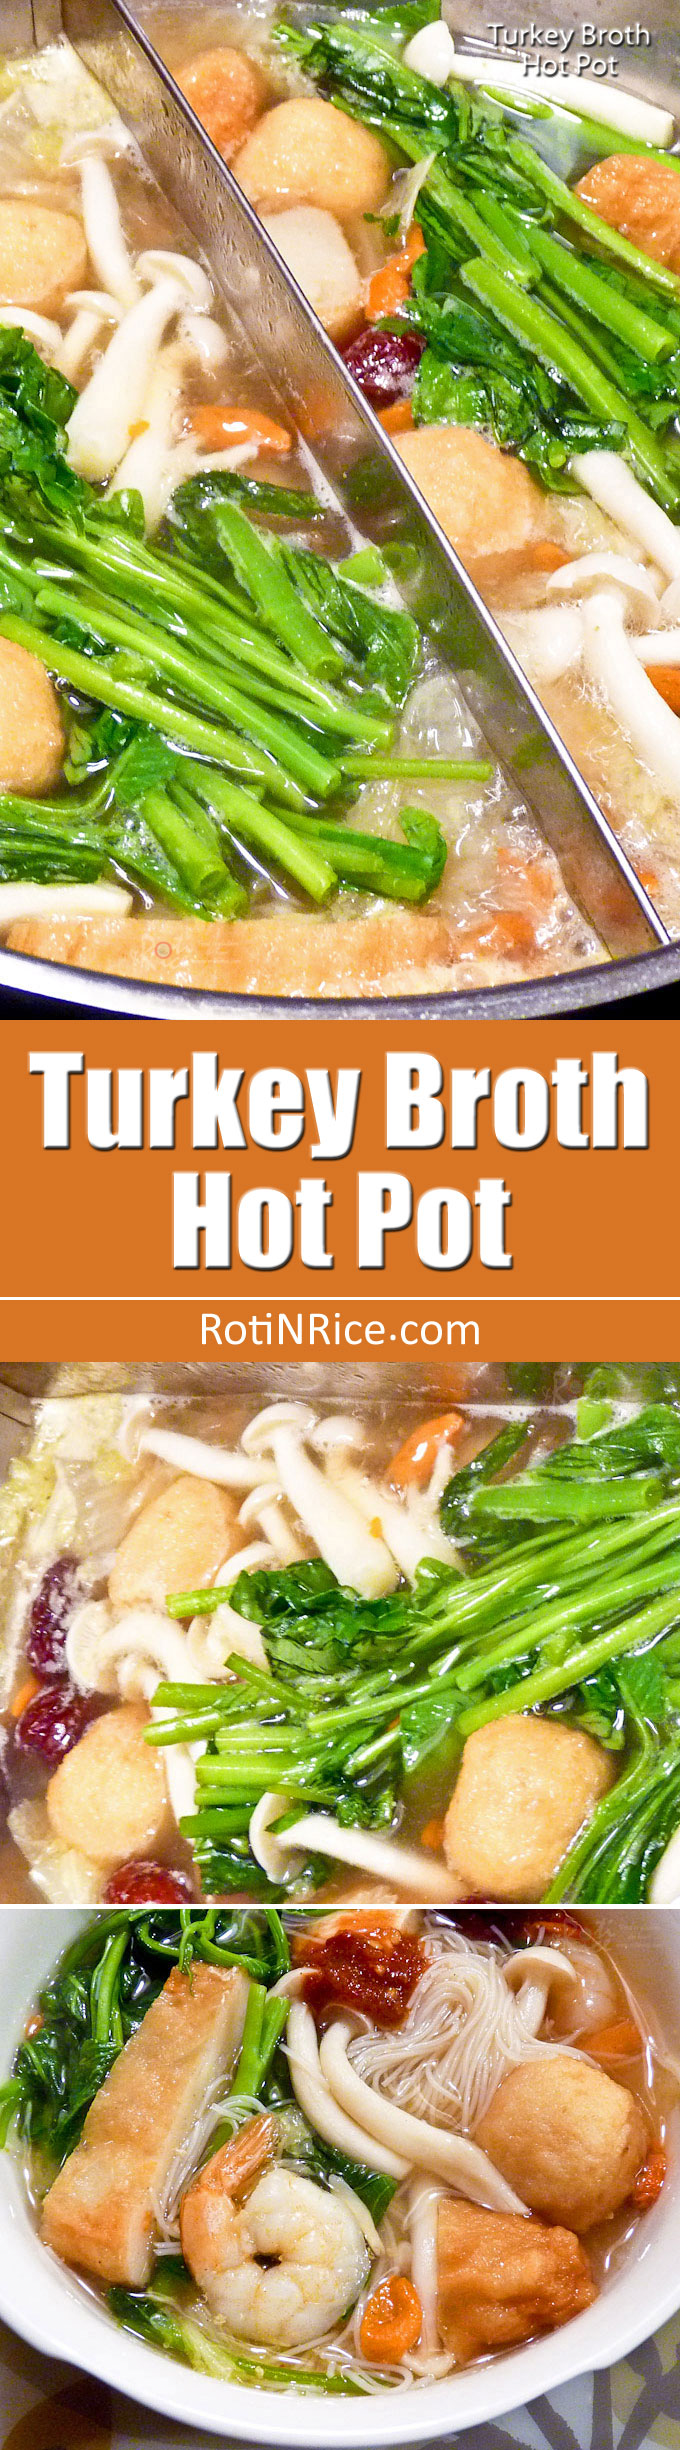 Use your leftover Thanksgiving turkey to make an amazing Turkey Broth Hot Pot. Perfect for another delicious family bonding time around the holiday table. | RotiNRice.com